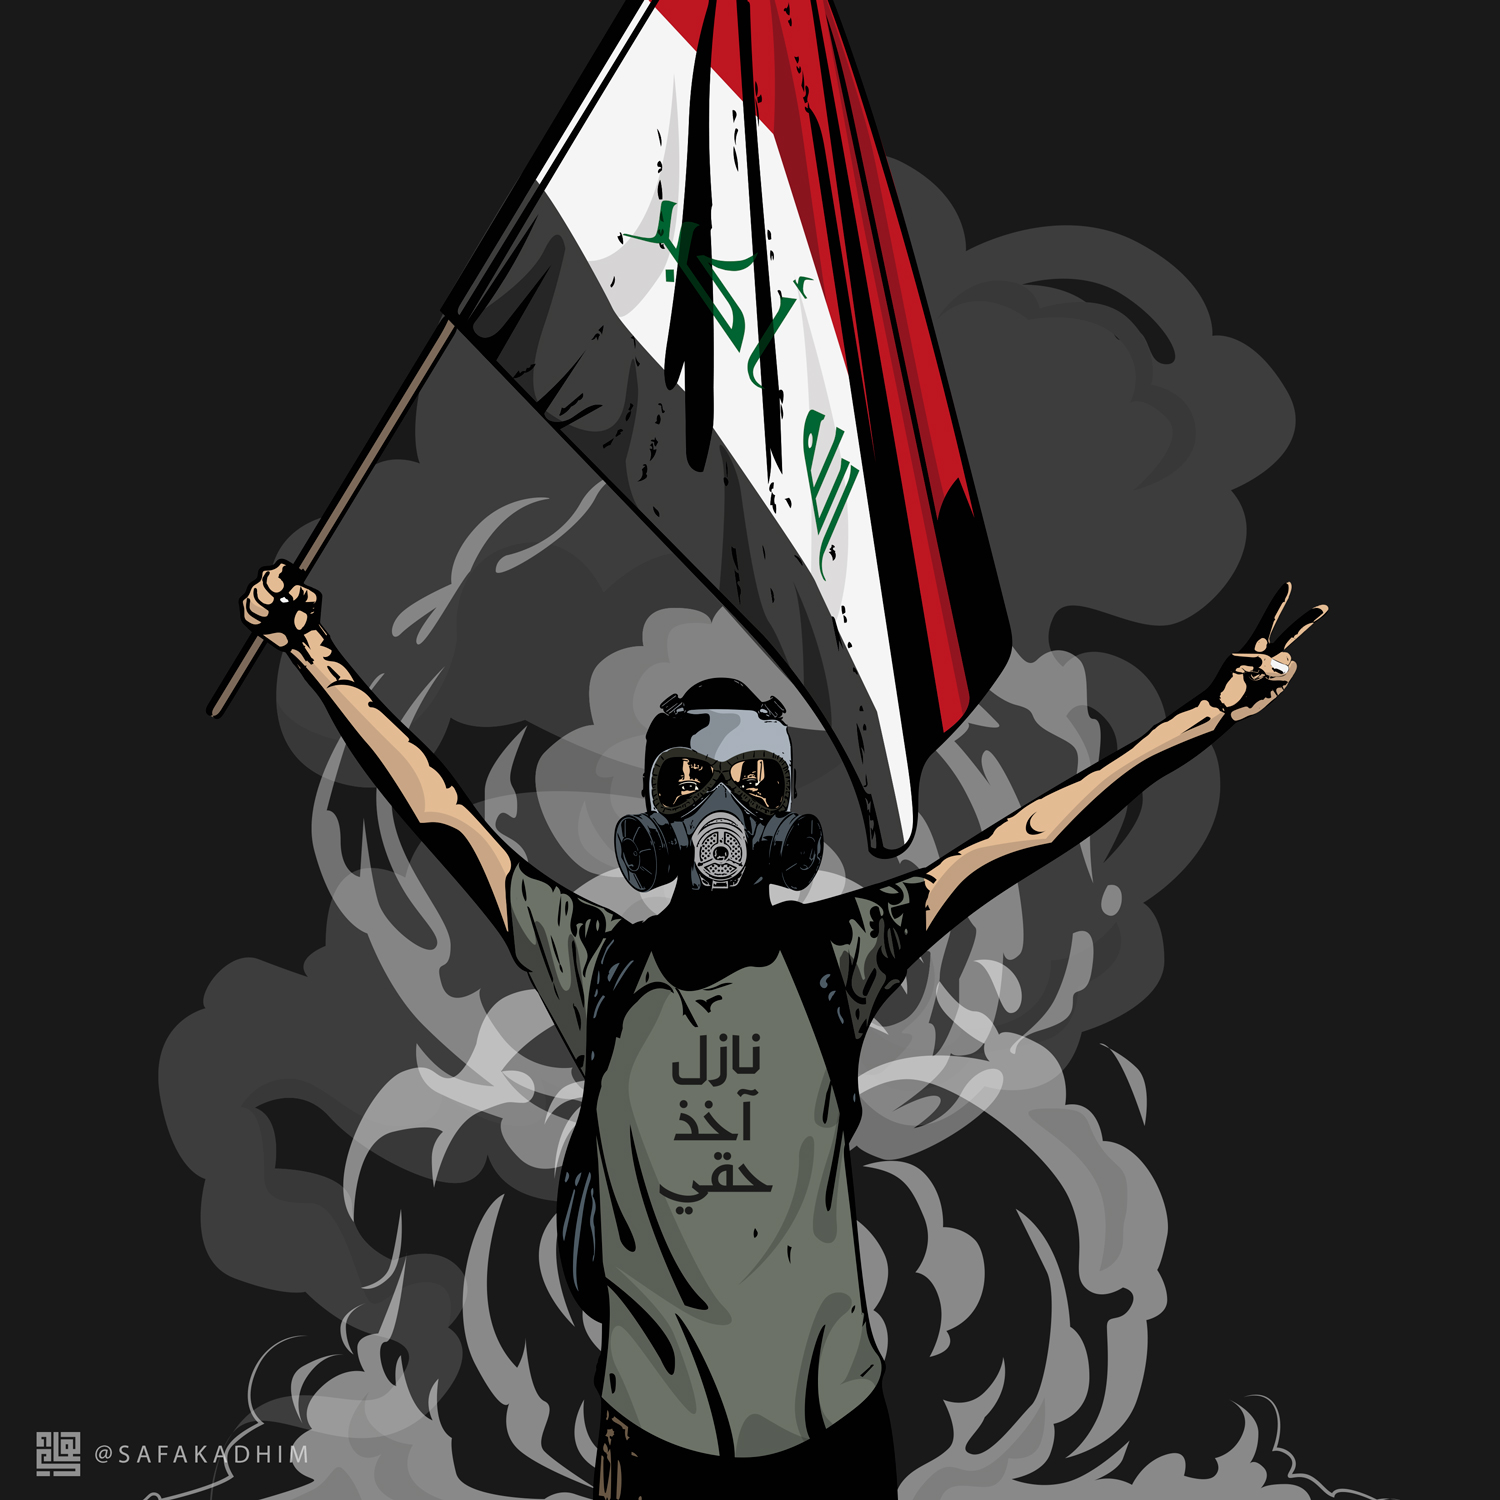 Iraq the art of protest